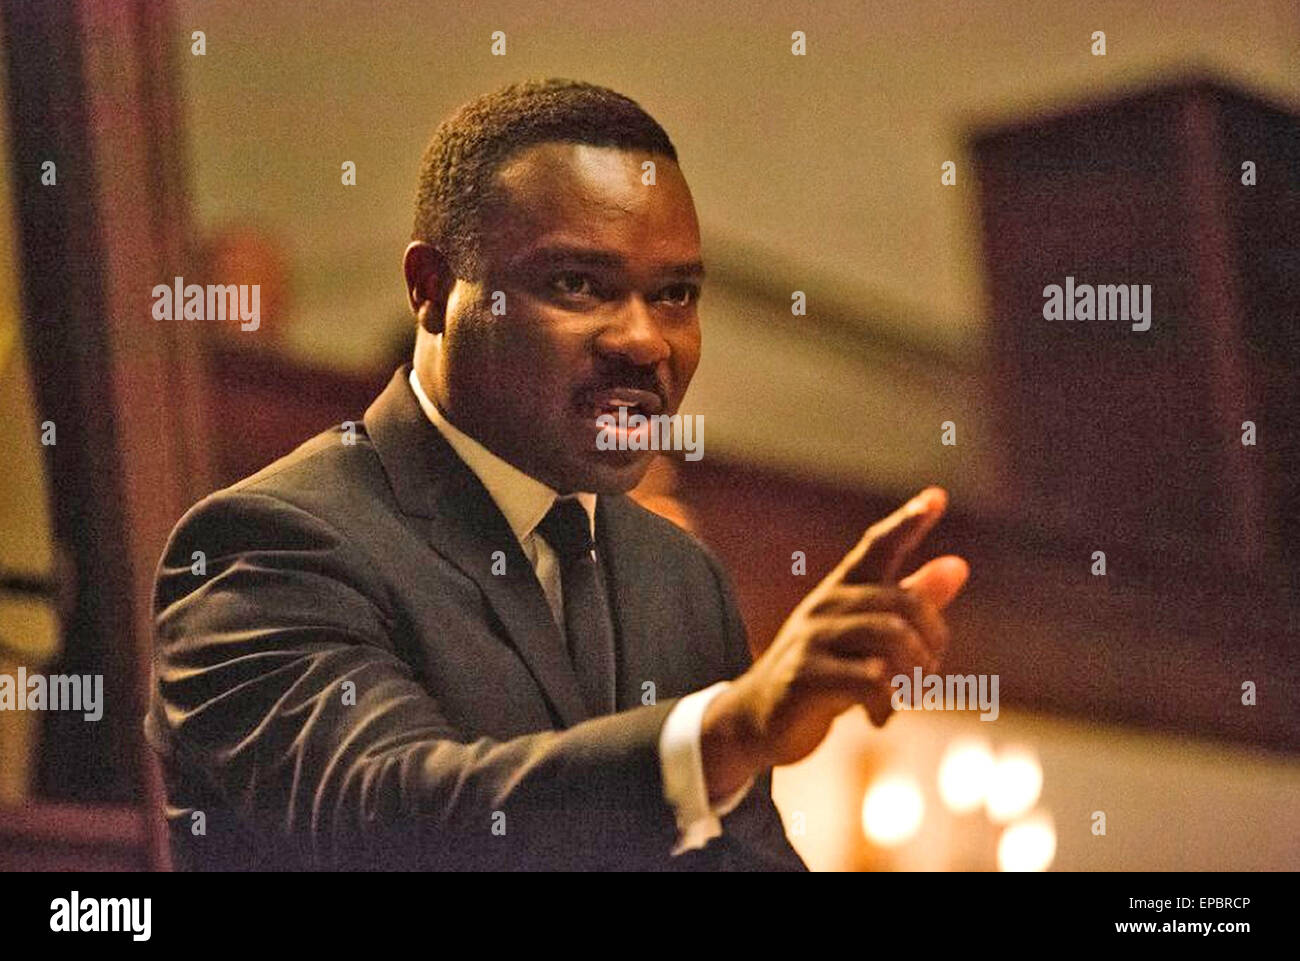 SELMA 2014 Paramount Pictures film with David Oyelowo as Martin Luther King Jnr - Stock Image